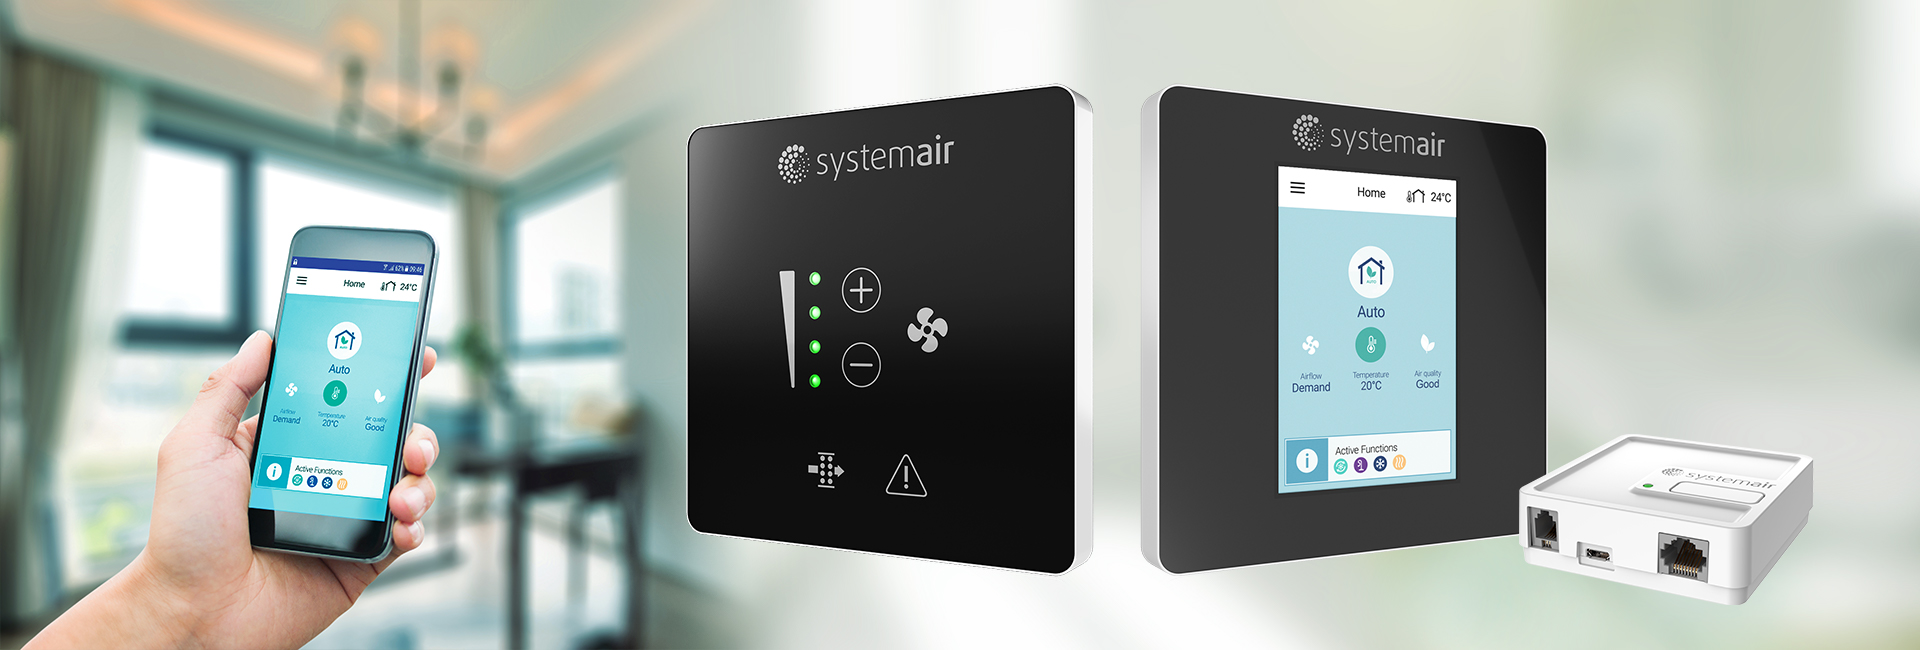 Systemair Global   Systemair